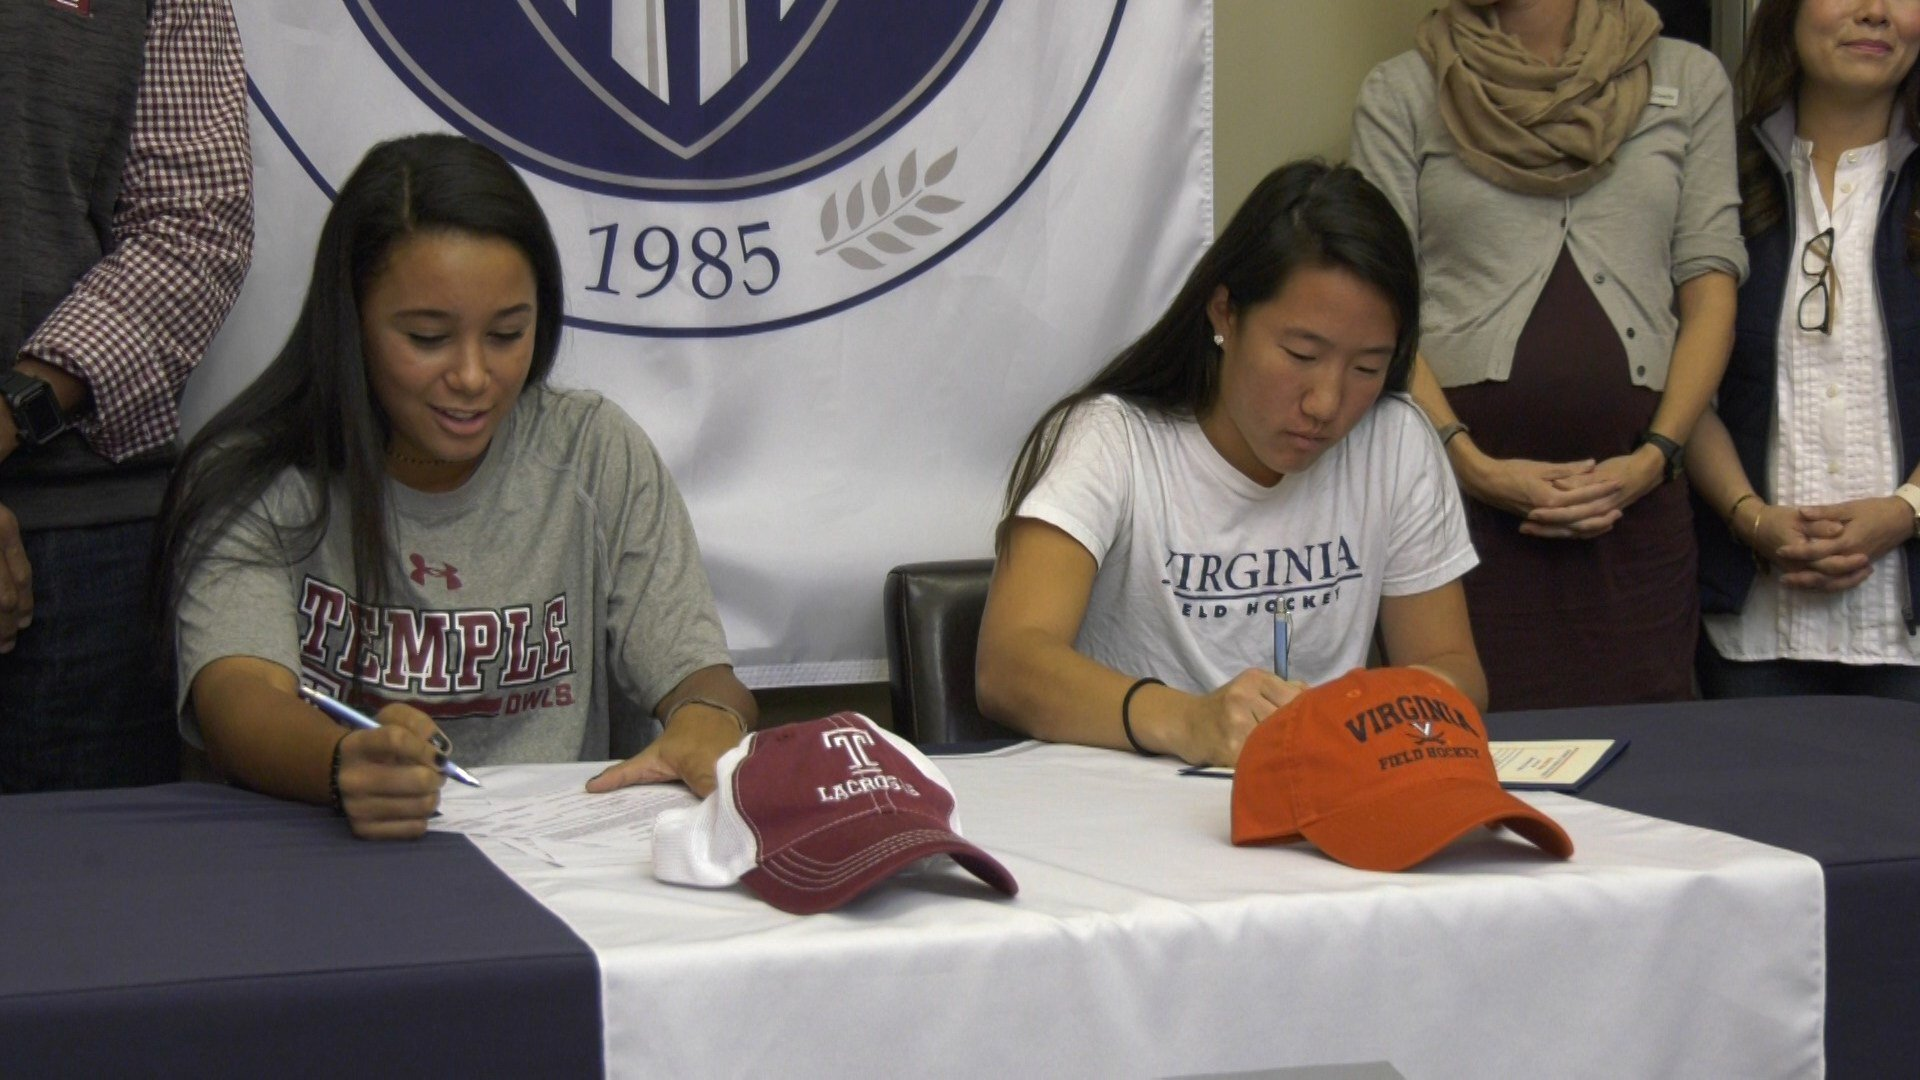 Archer signs with Temple lacrosse.   Shim signs with UVA field hockey